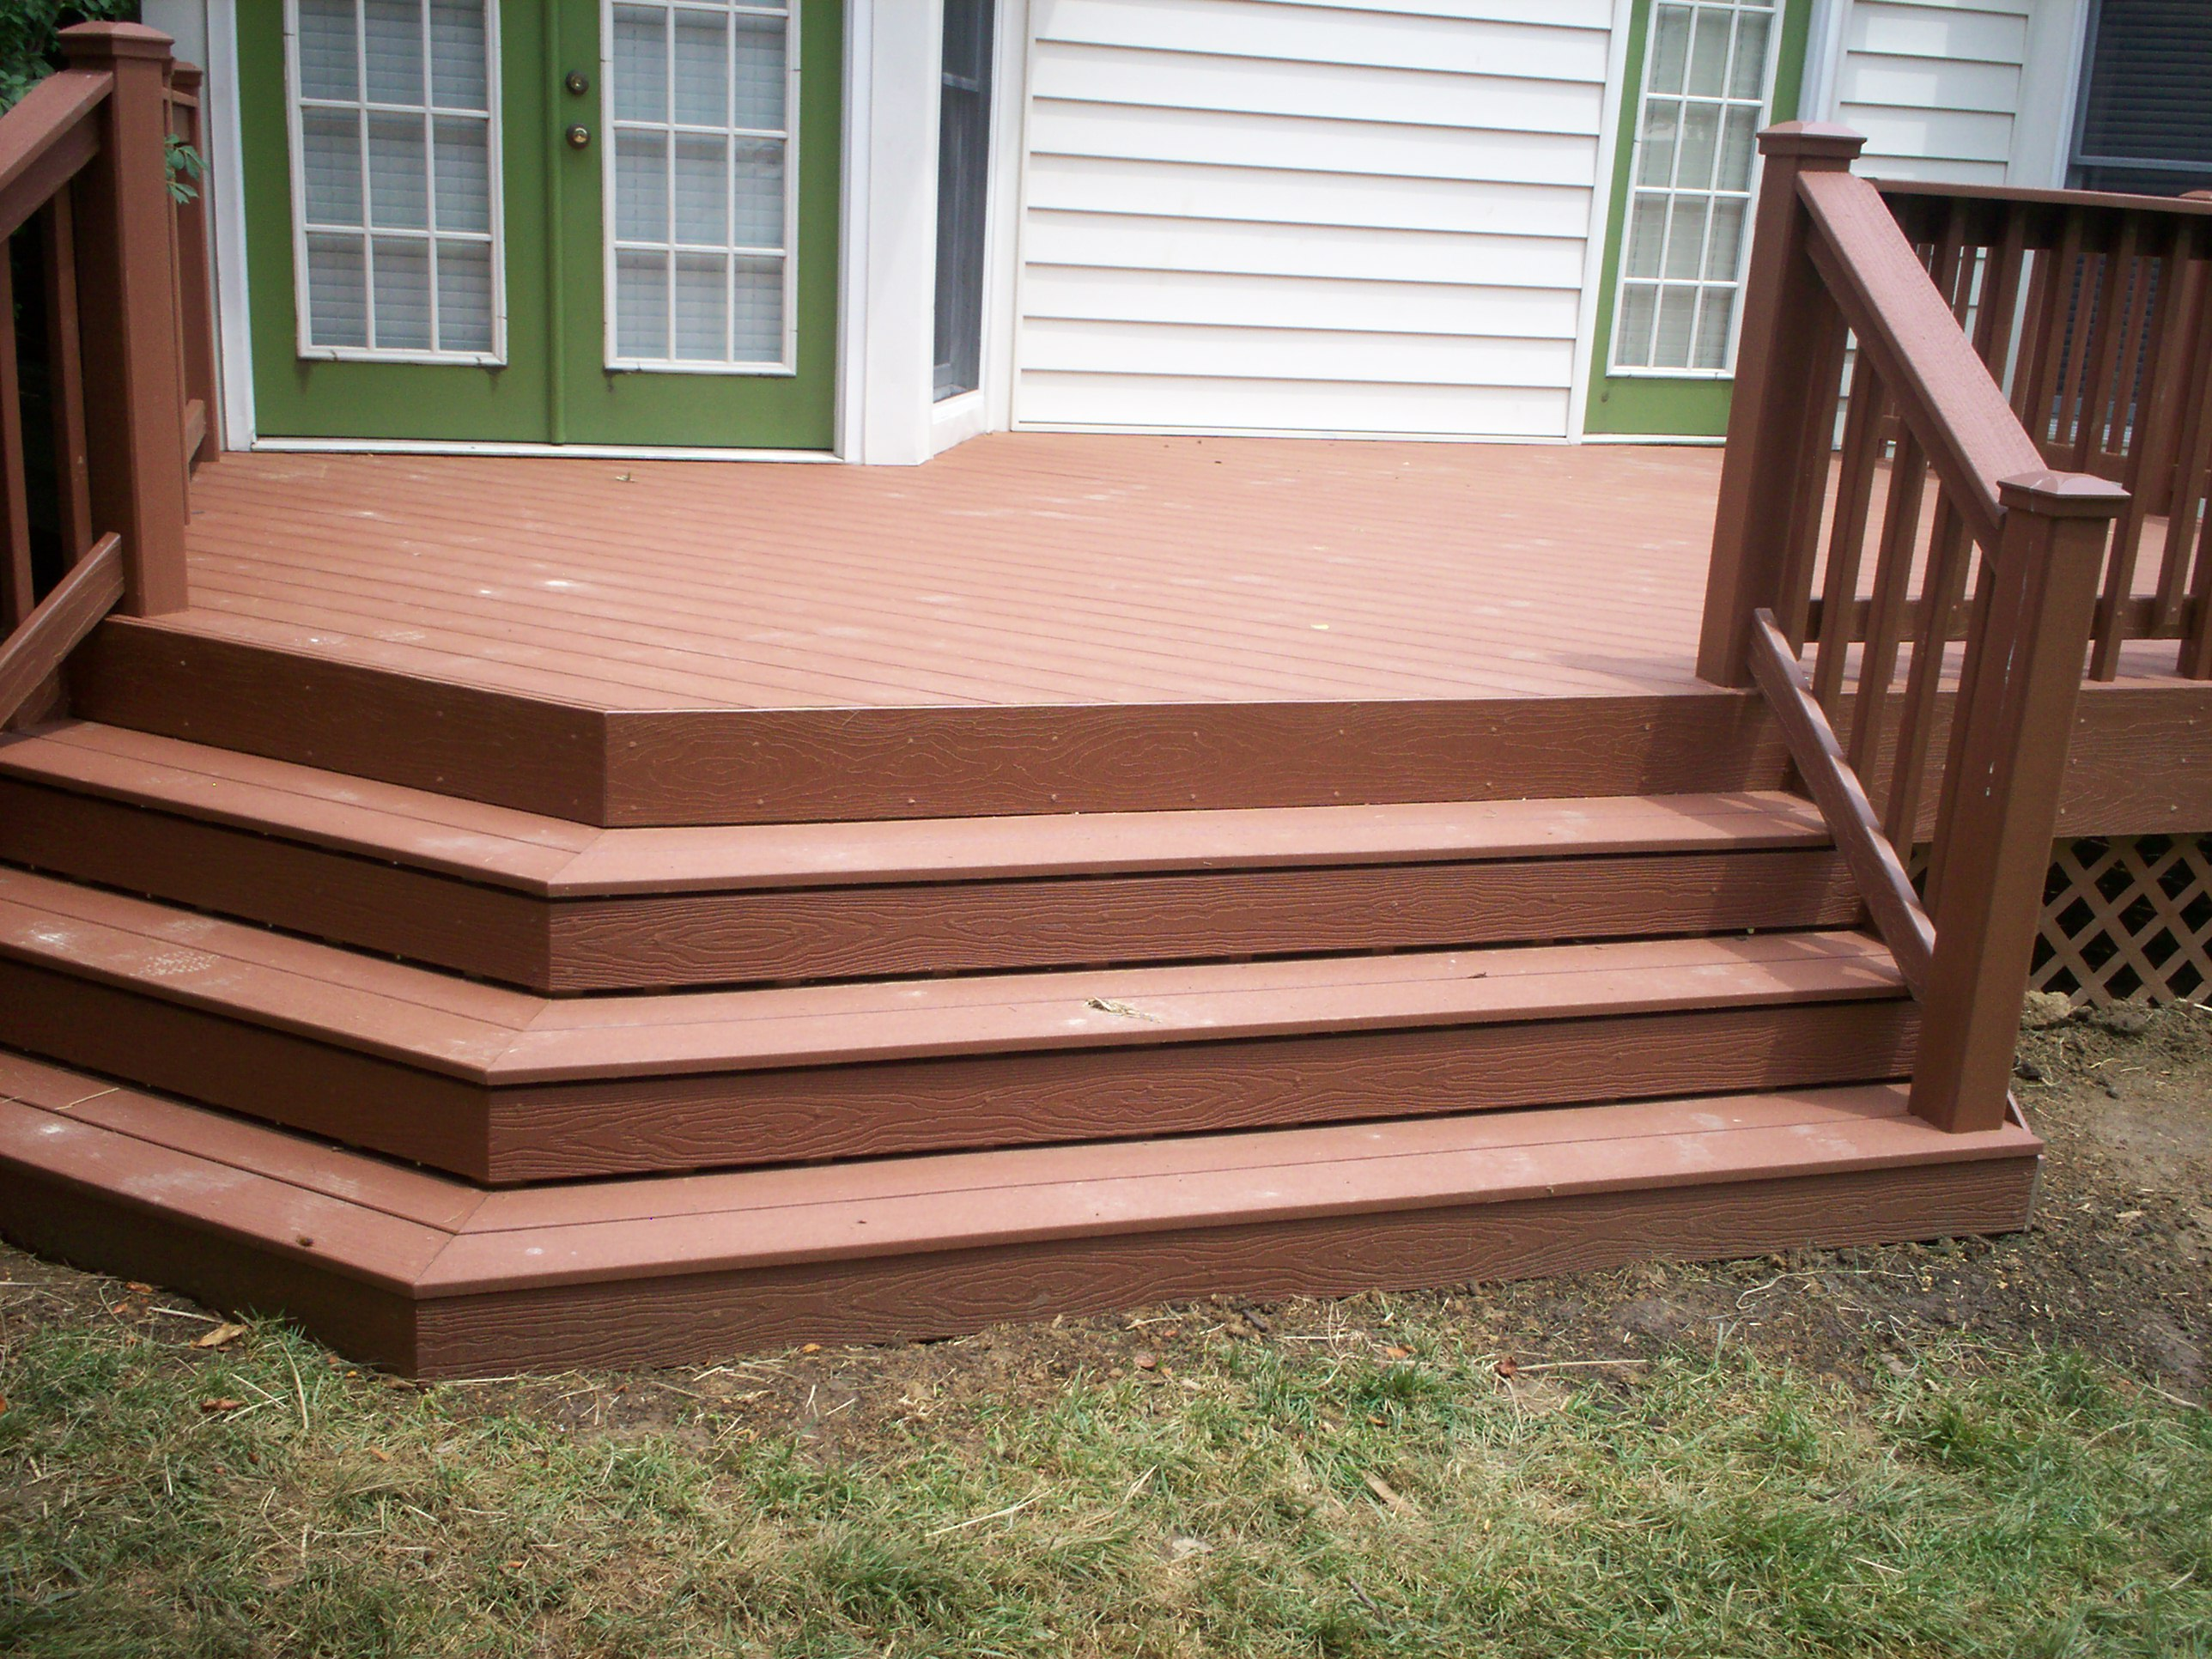 St. Louis Decks: Wide Deck Stairs | St. Louis decks, screened ...